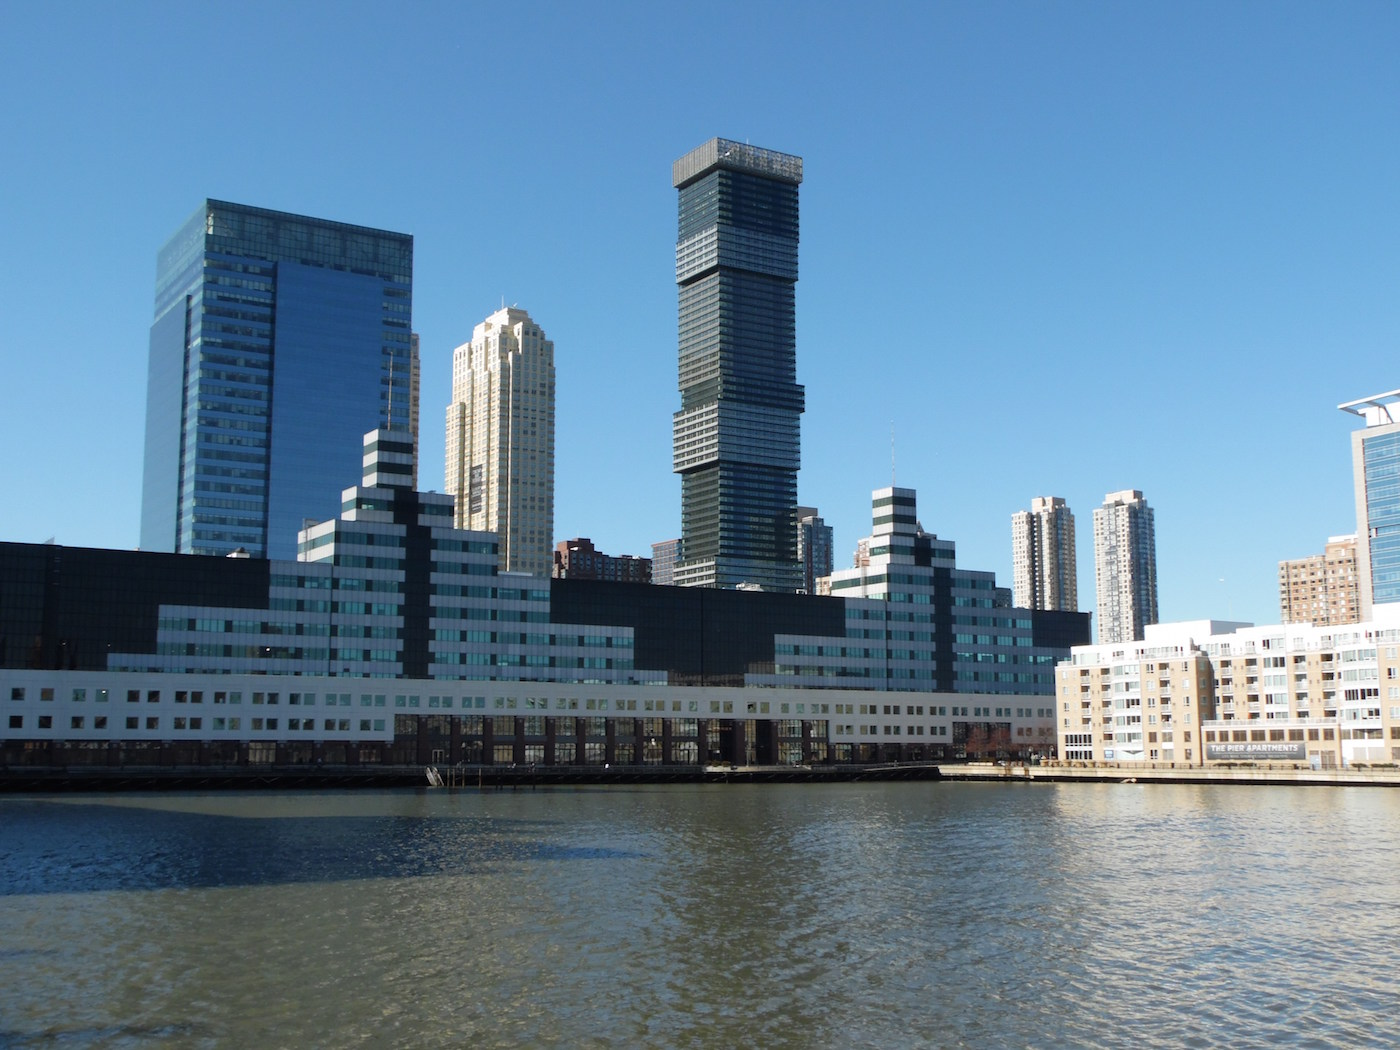 Studio Apartment Jersey City studio apartment jersey city from the hudson river imageforum